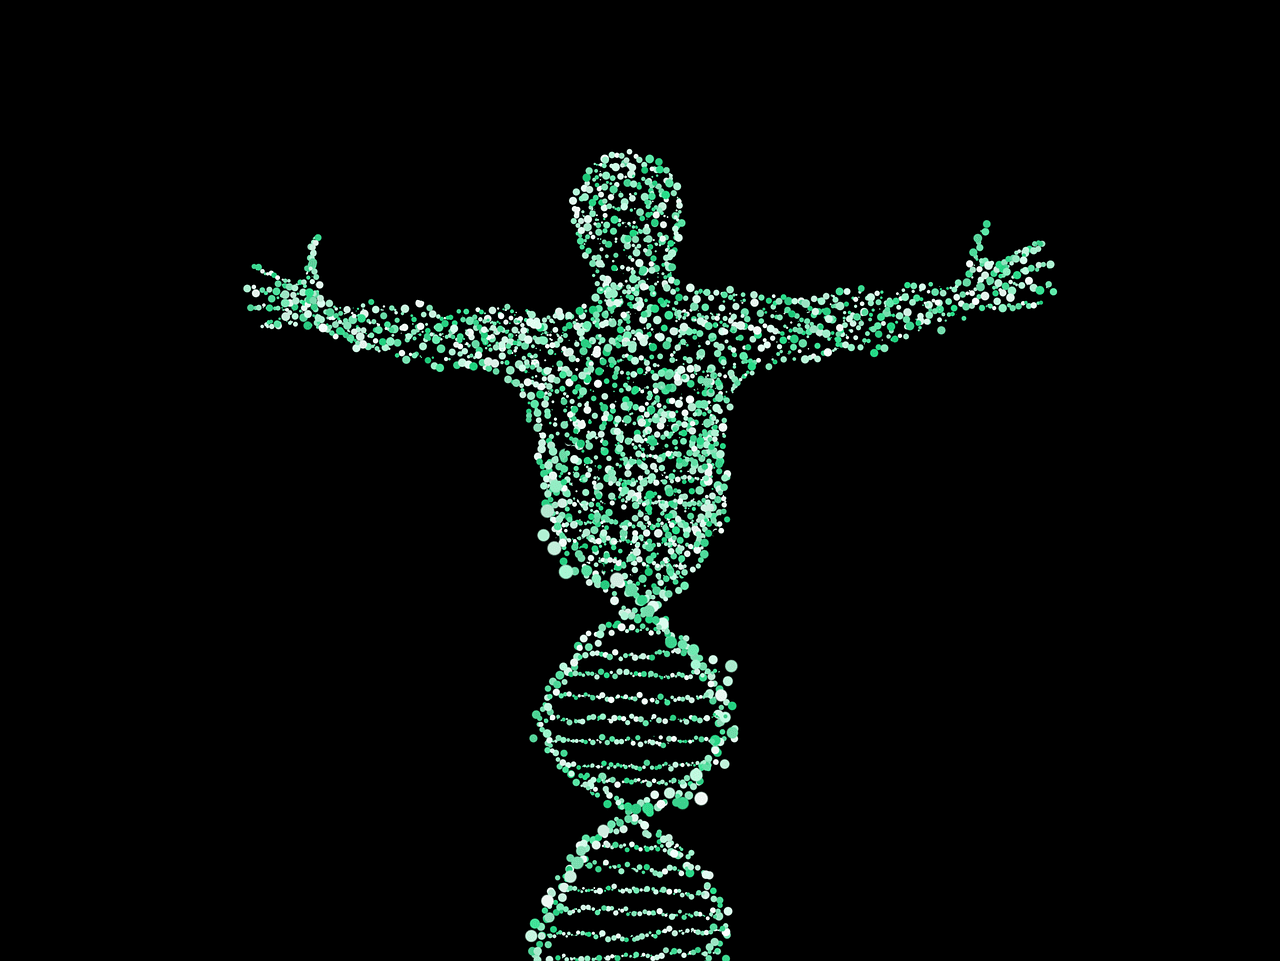 Geneticists sequence the complete human X chromosome for the first time - ZME Science